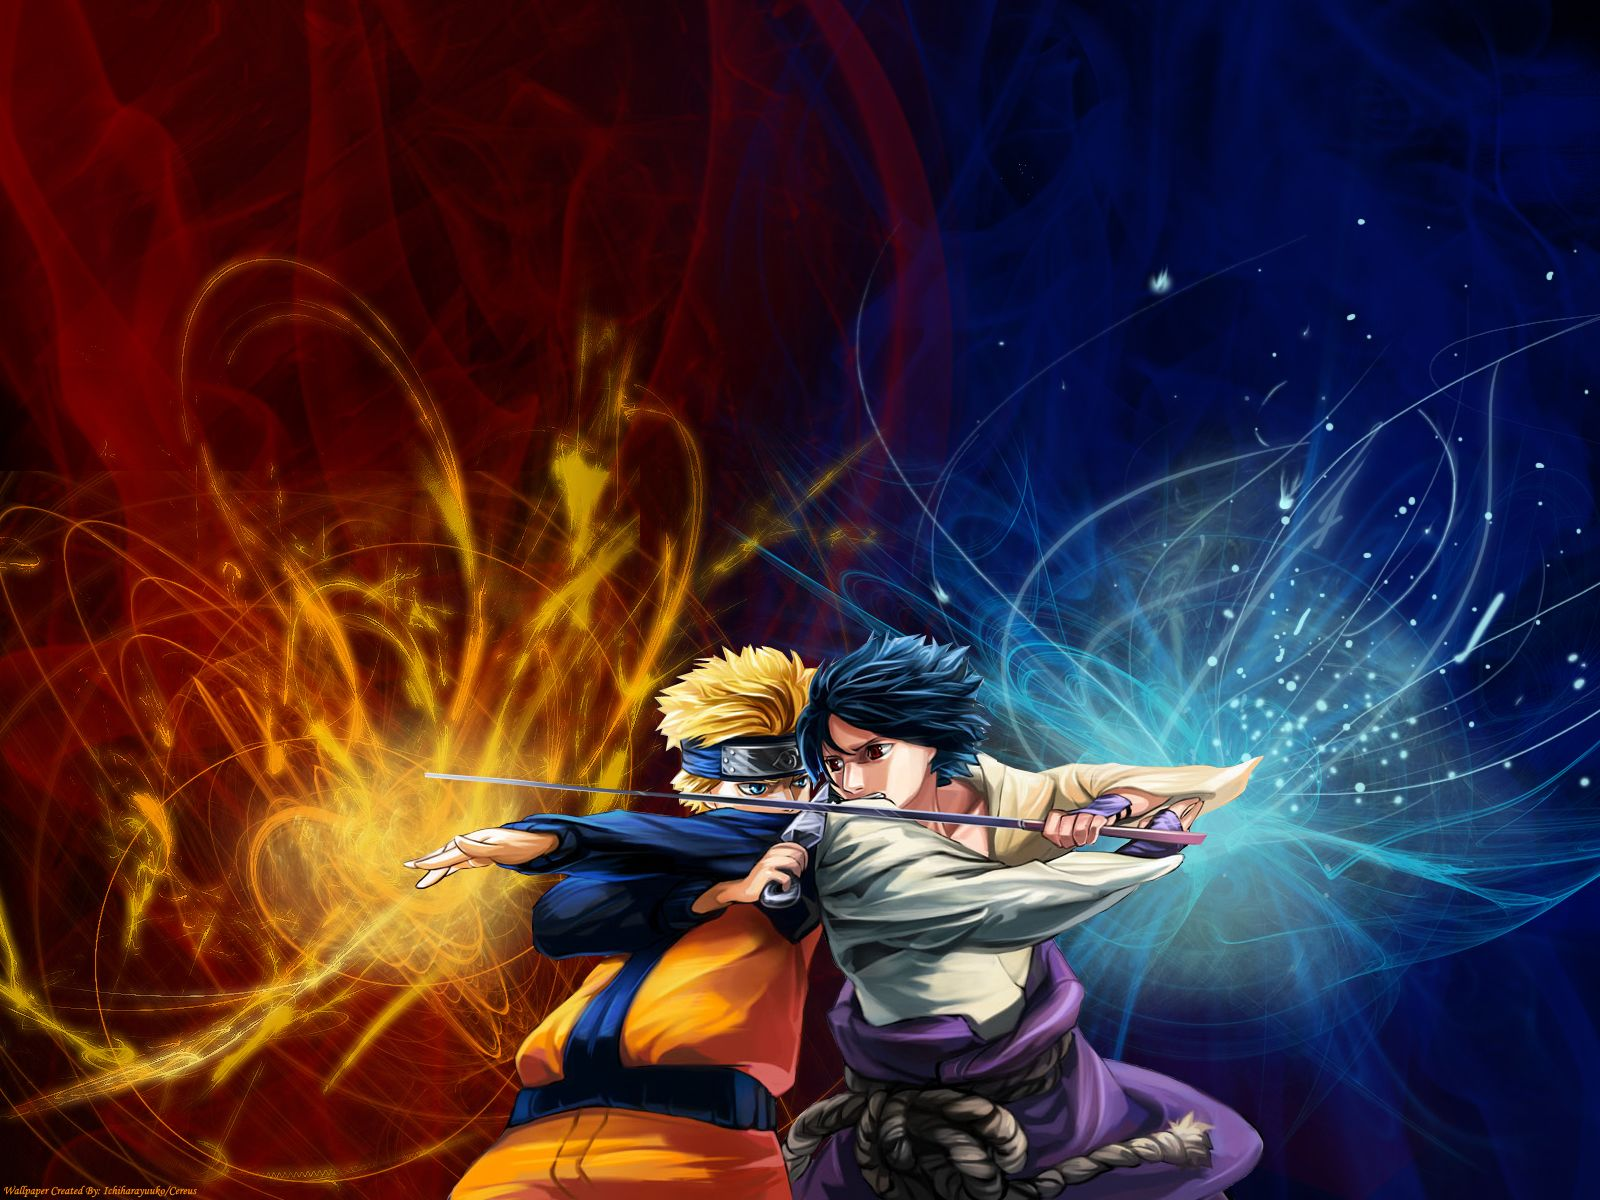 Naruto Vs Sasuke Wallpapers 21